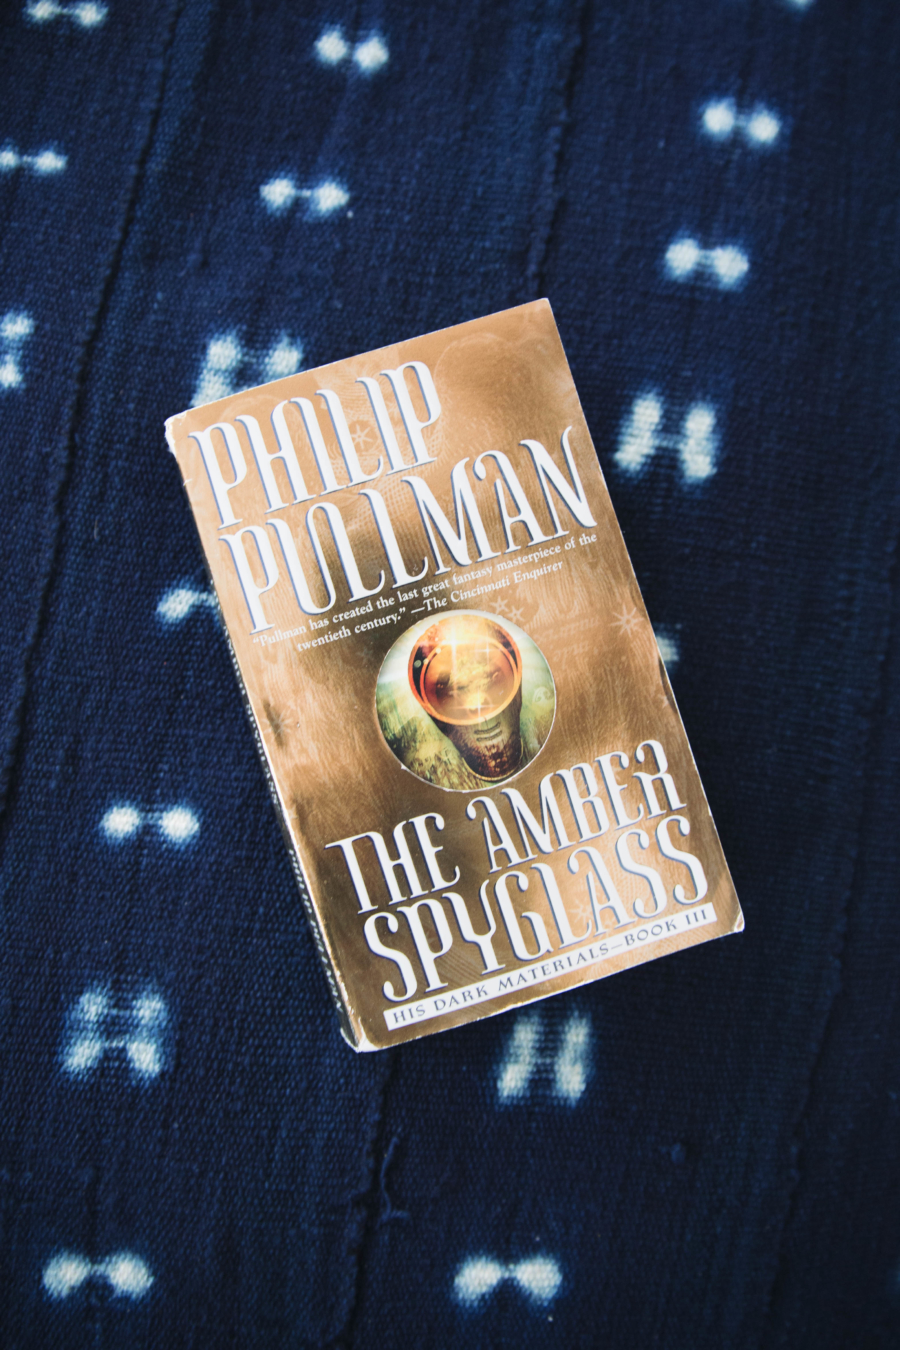 Summer 2017 Reading List The Amber Spyglass by Philip Pullman